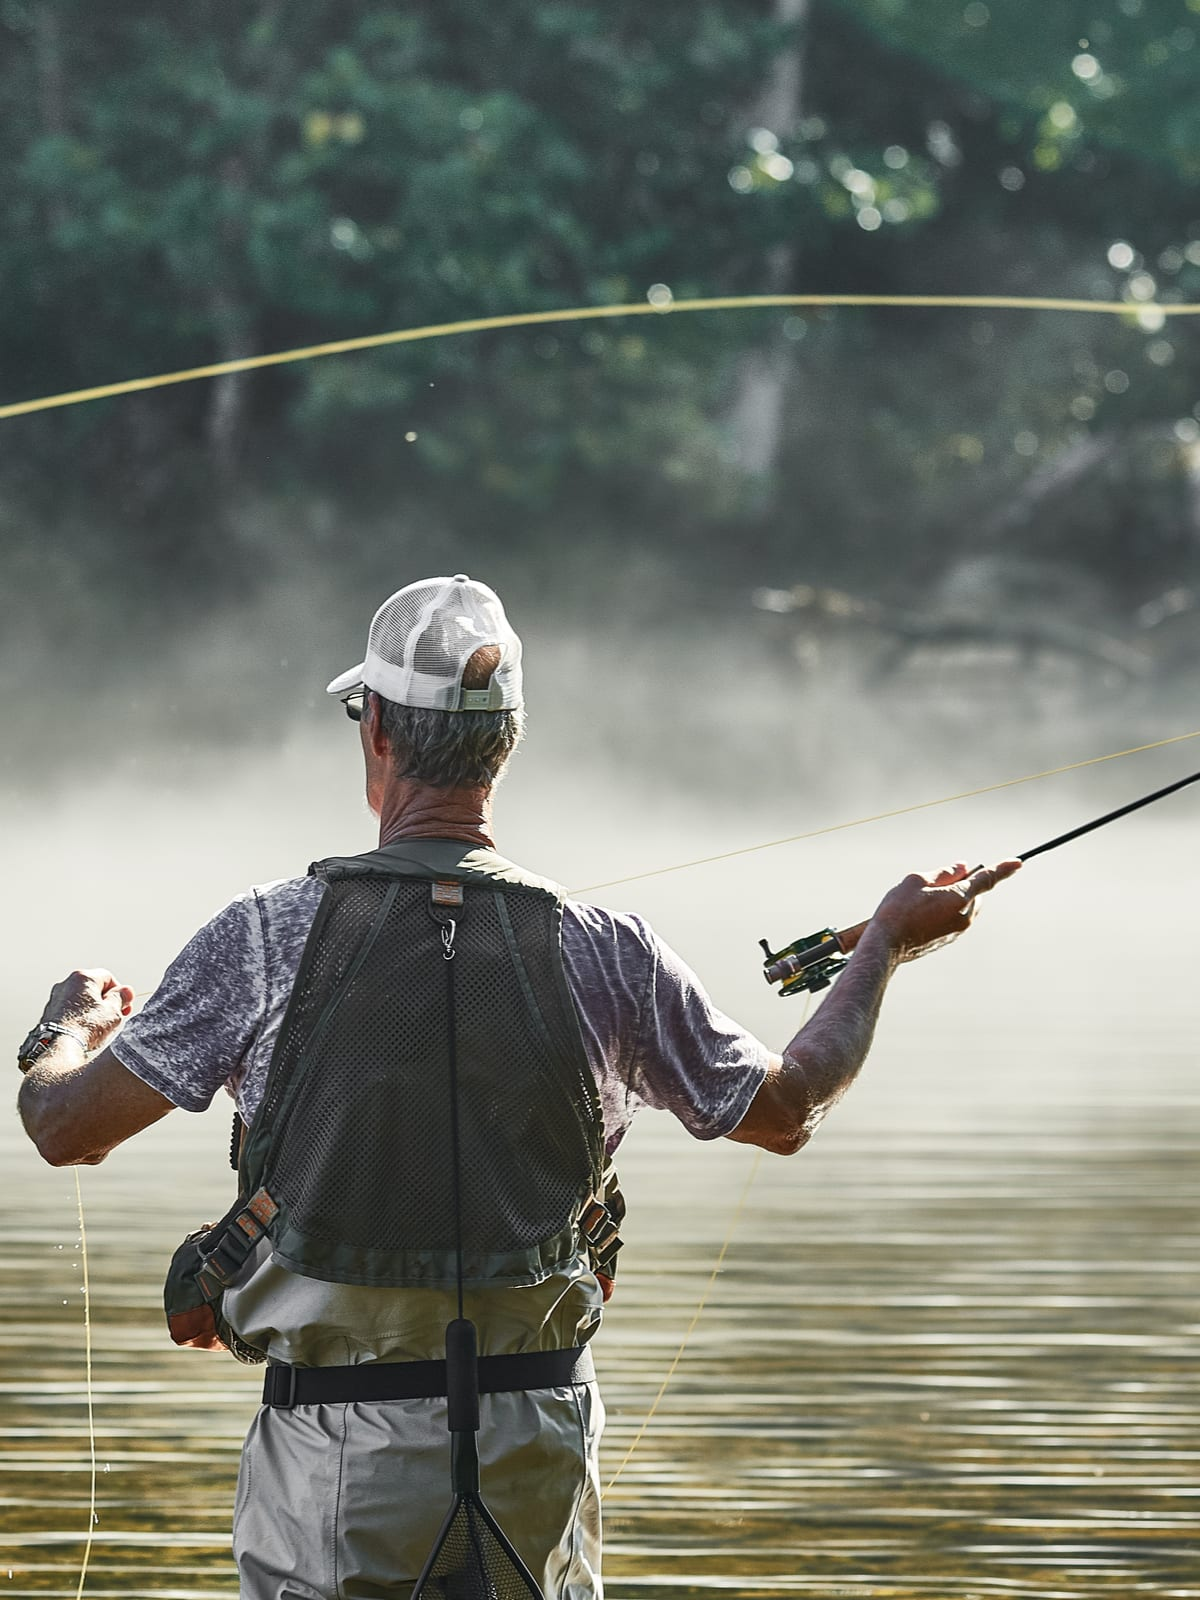 Fishing is one of many activities at Cooper River Park near Cherry Hill, NJ.